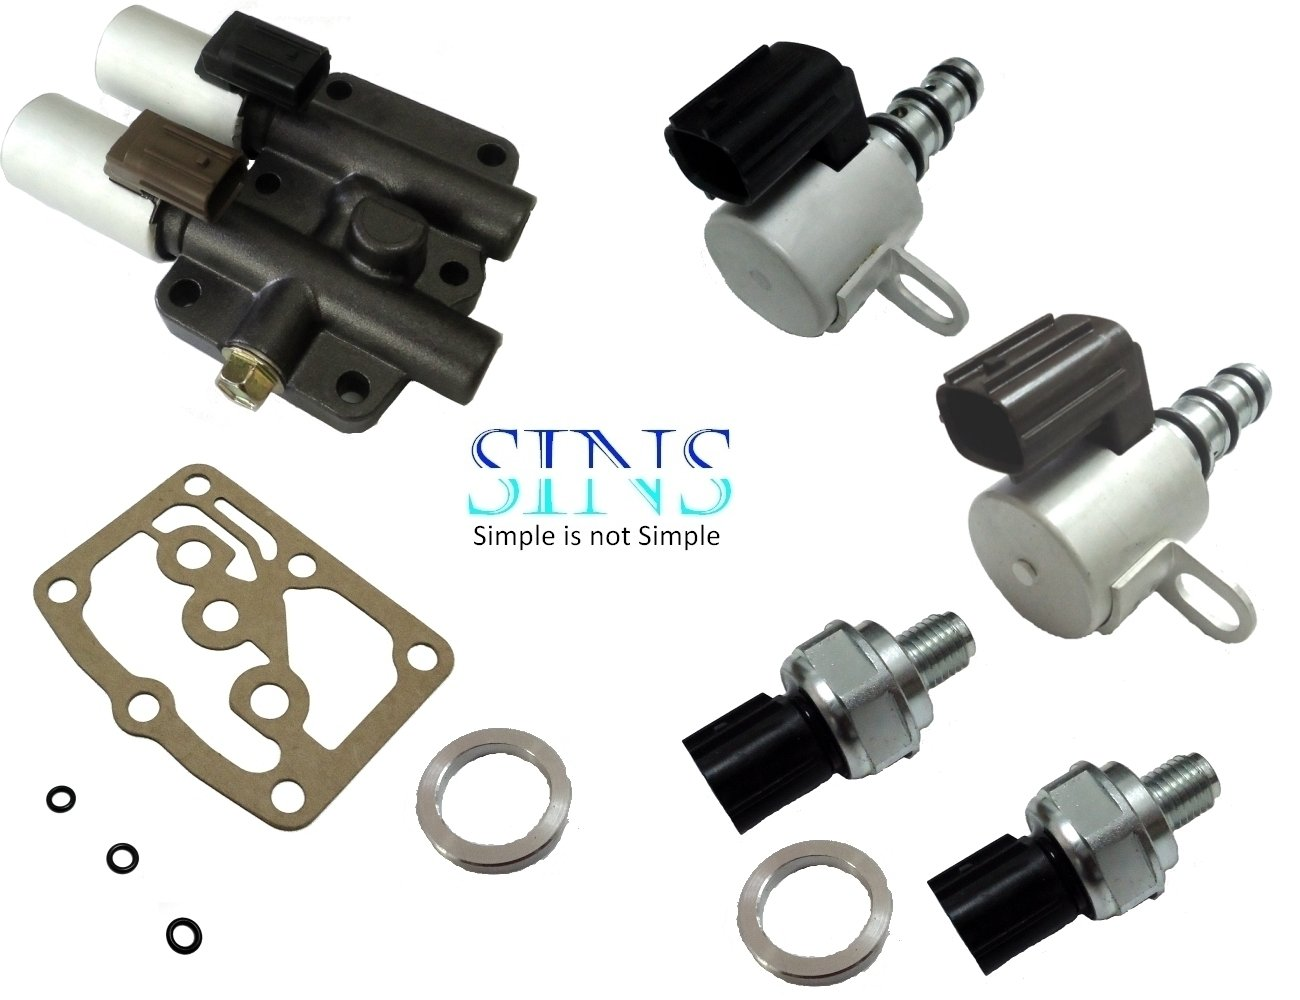 Honda Accord Odyssey Acura CL TL Transmission Solenoid Pressure Switch Kit 28250-P6H-024 28400-P6H-013 28500-P6H-013 28600-P7Z-013 SINS